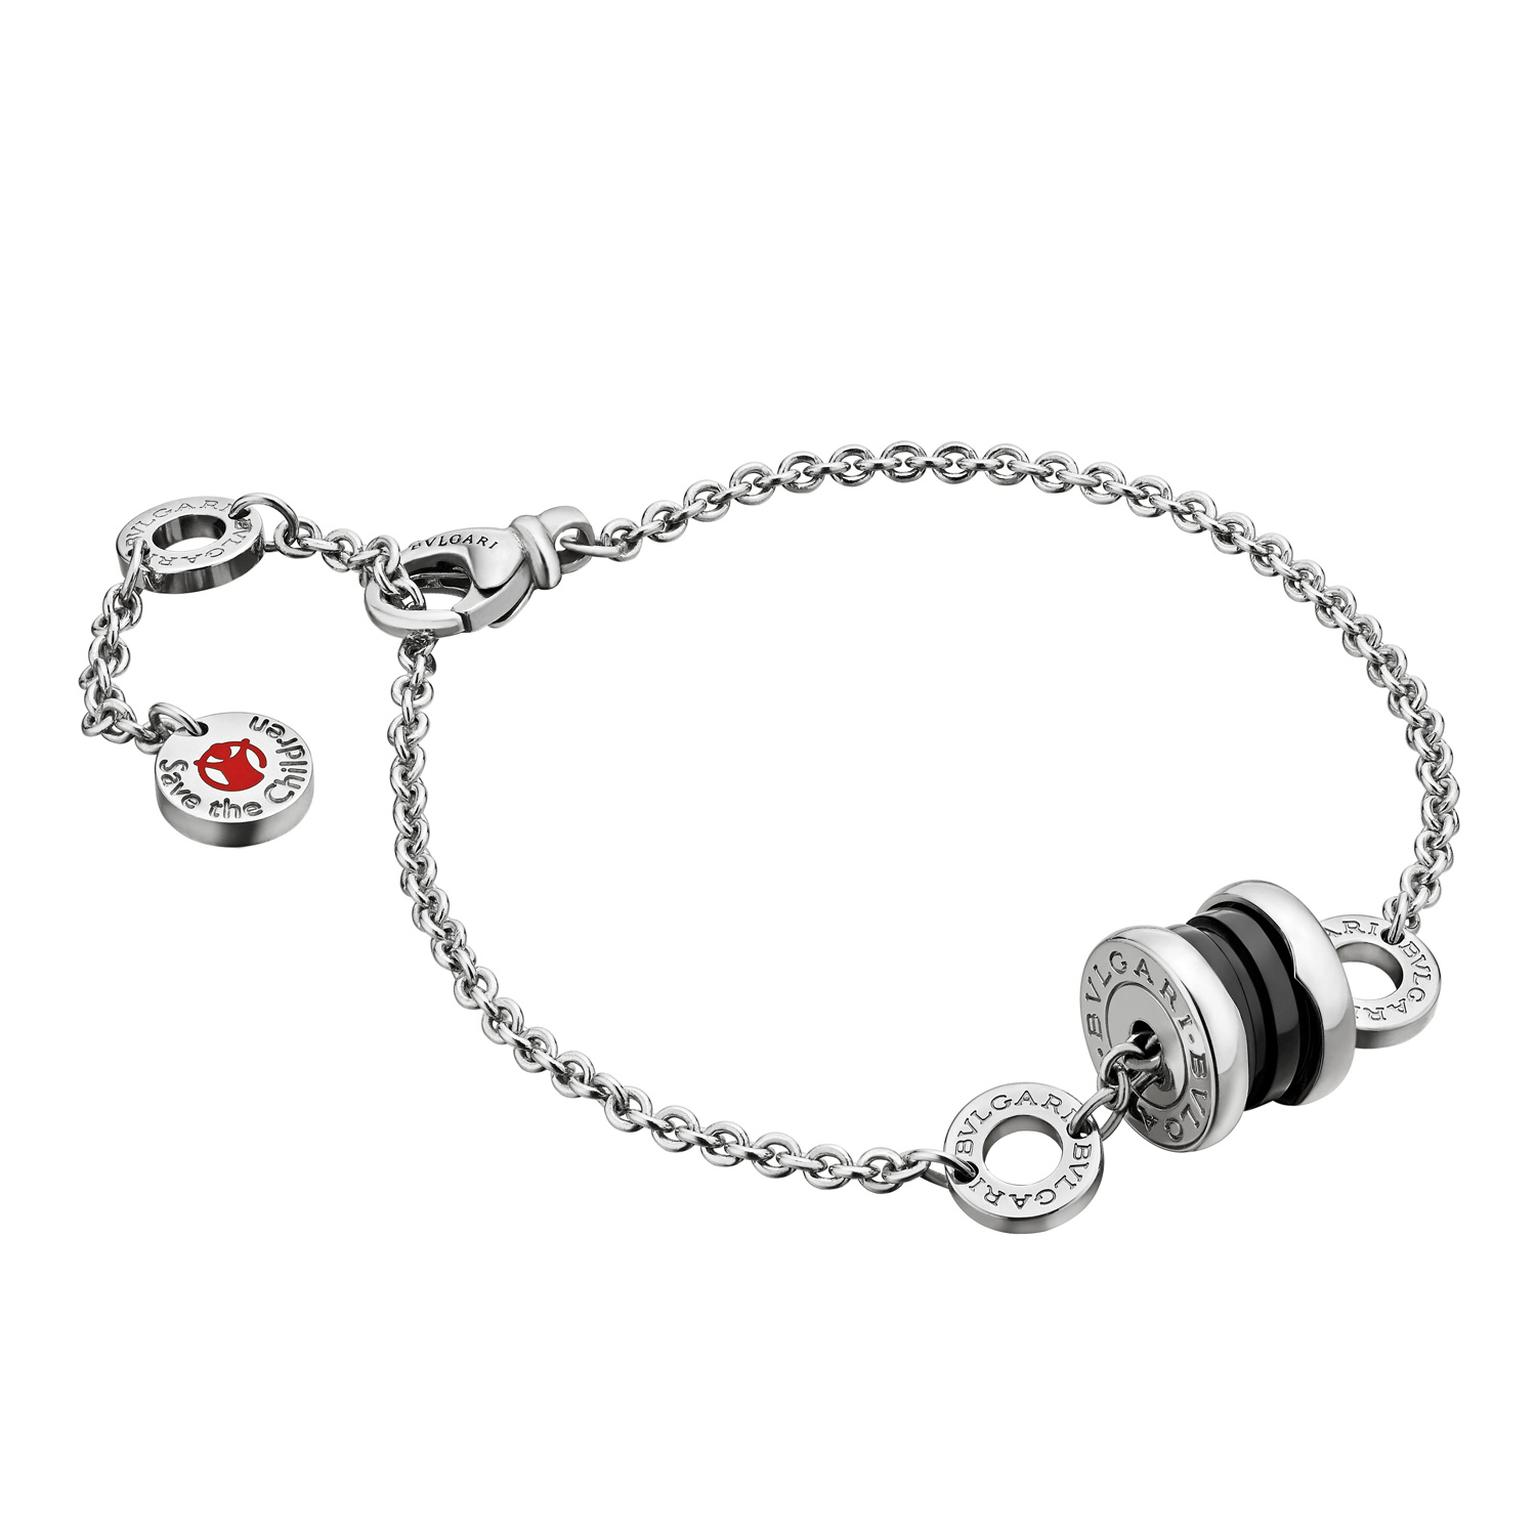 Bulgari Save the Children bracelet in silver and enamel